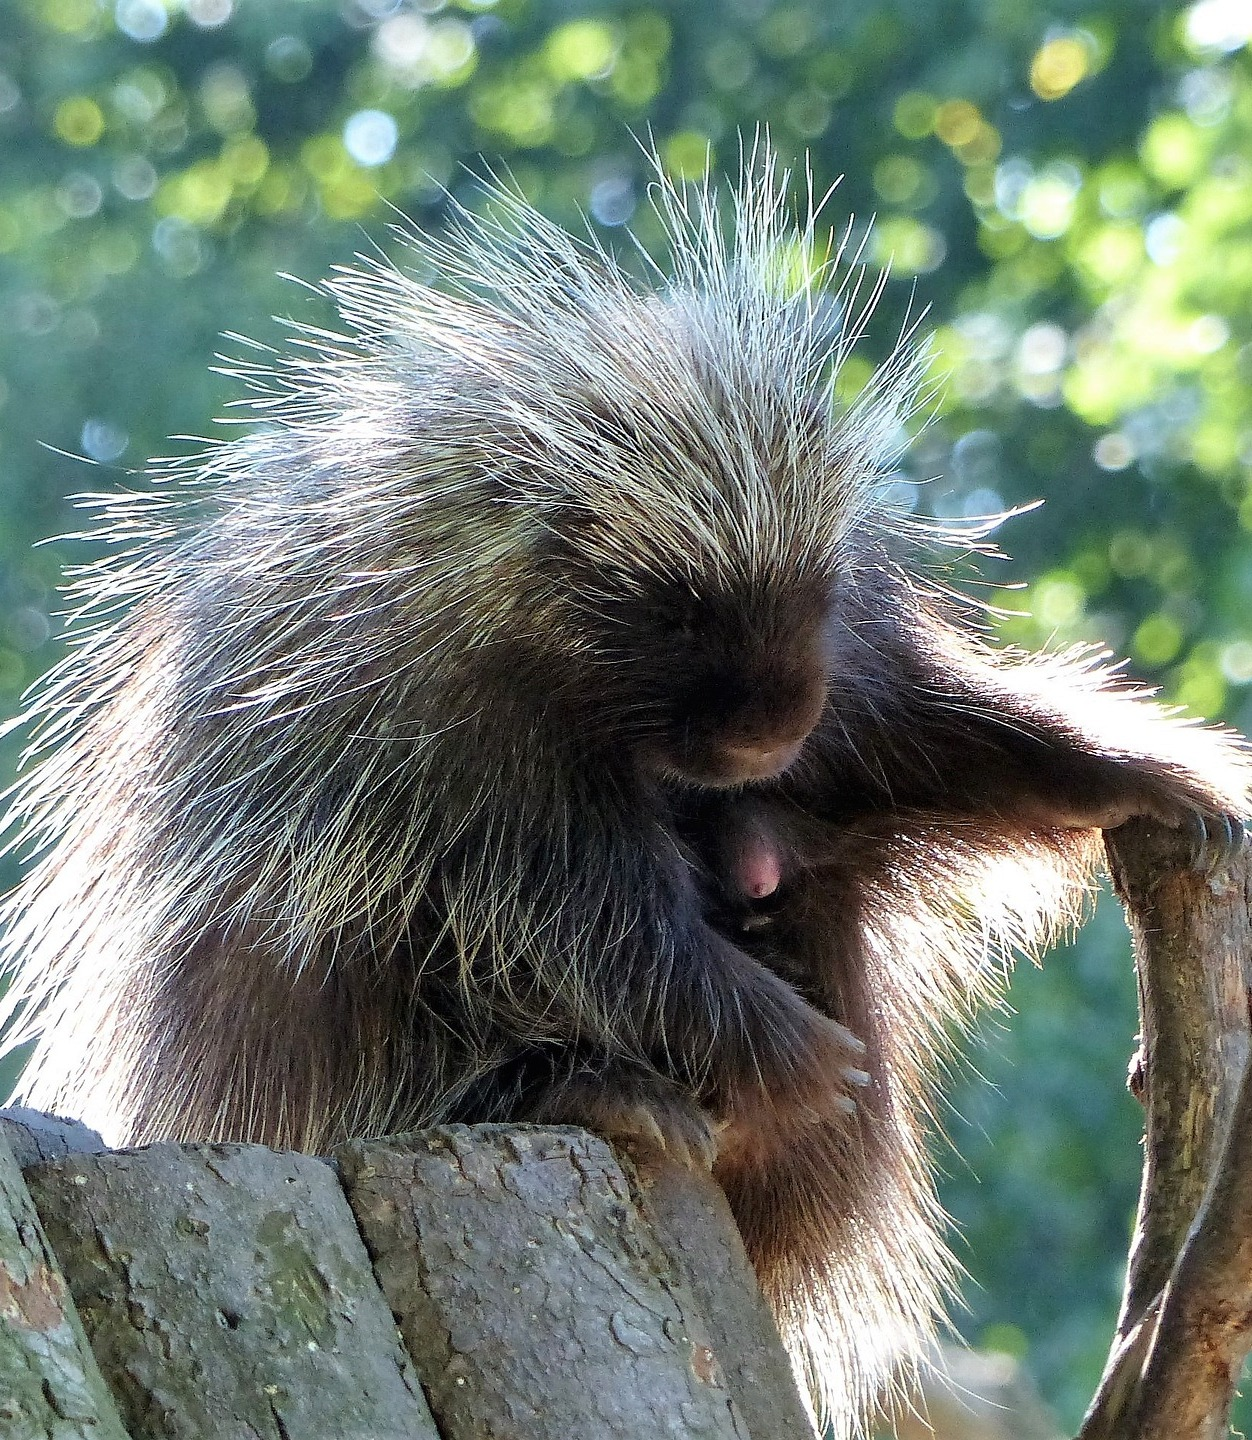 Picture of a sleeping porcupine.